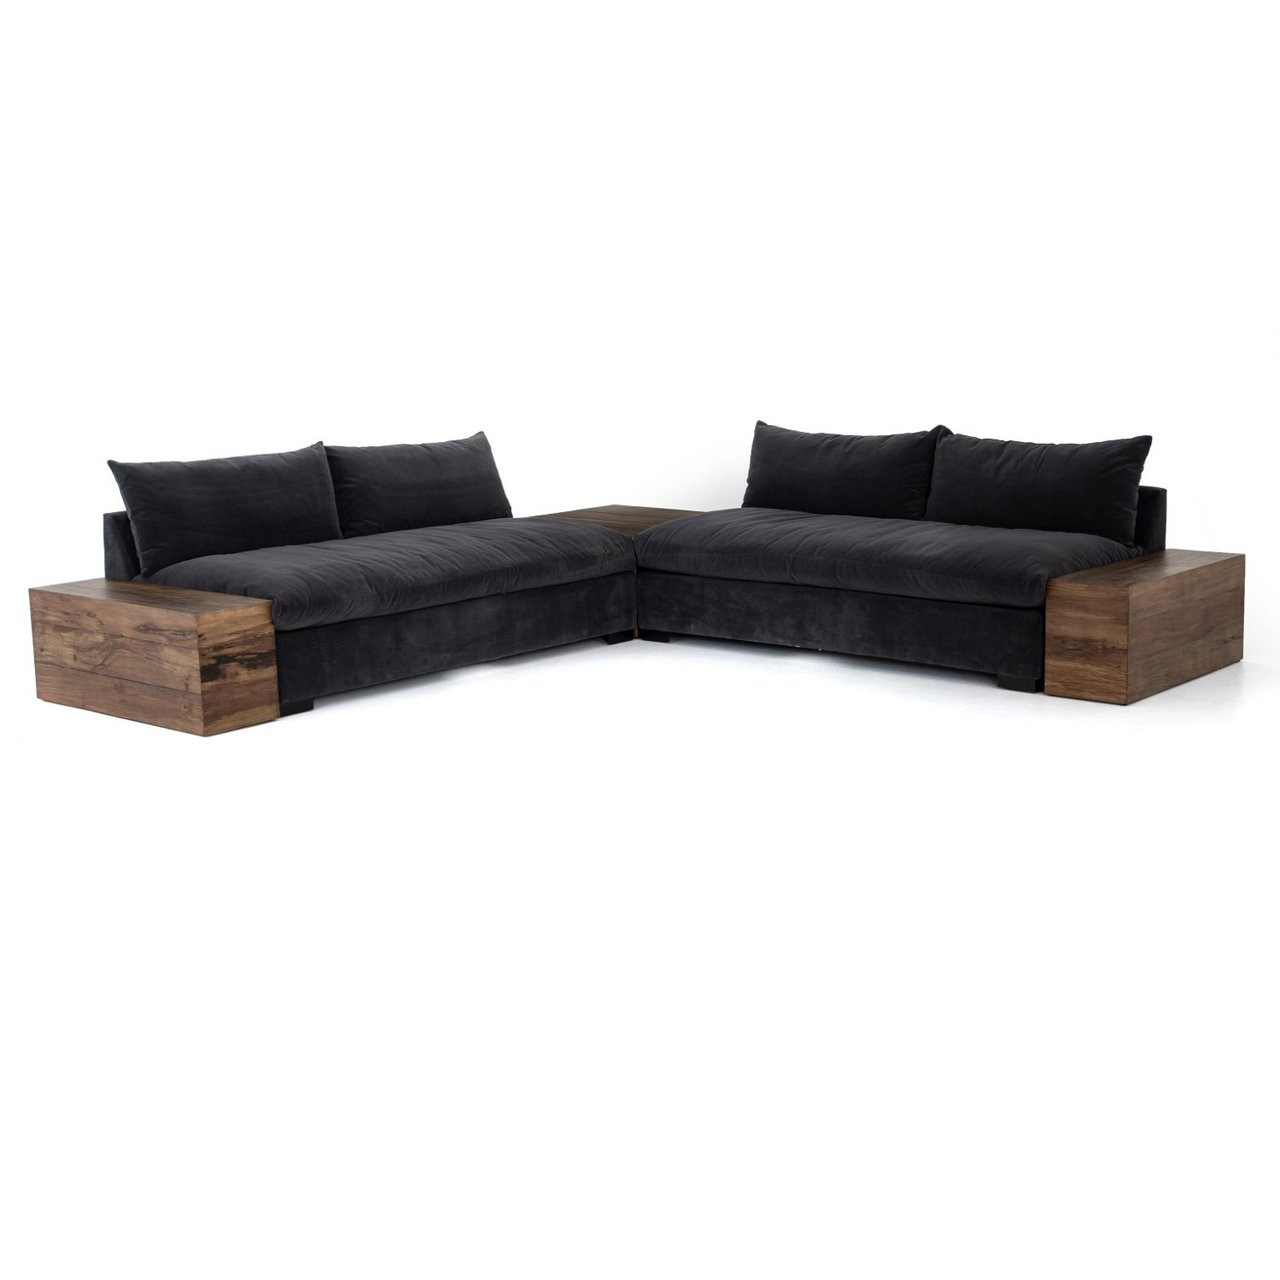 Dorset Charcoal Grey 2-Piece Sectional Sofa with Wooden Arms | Zin ...